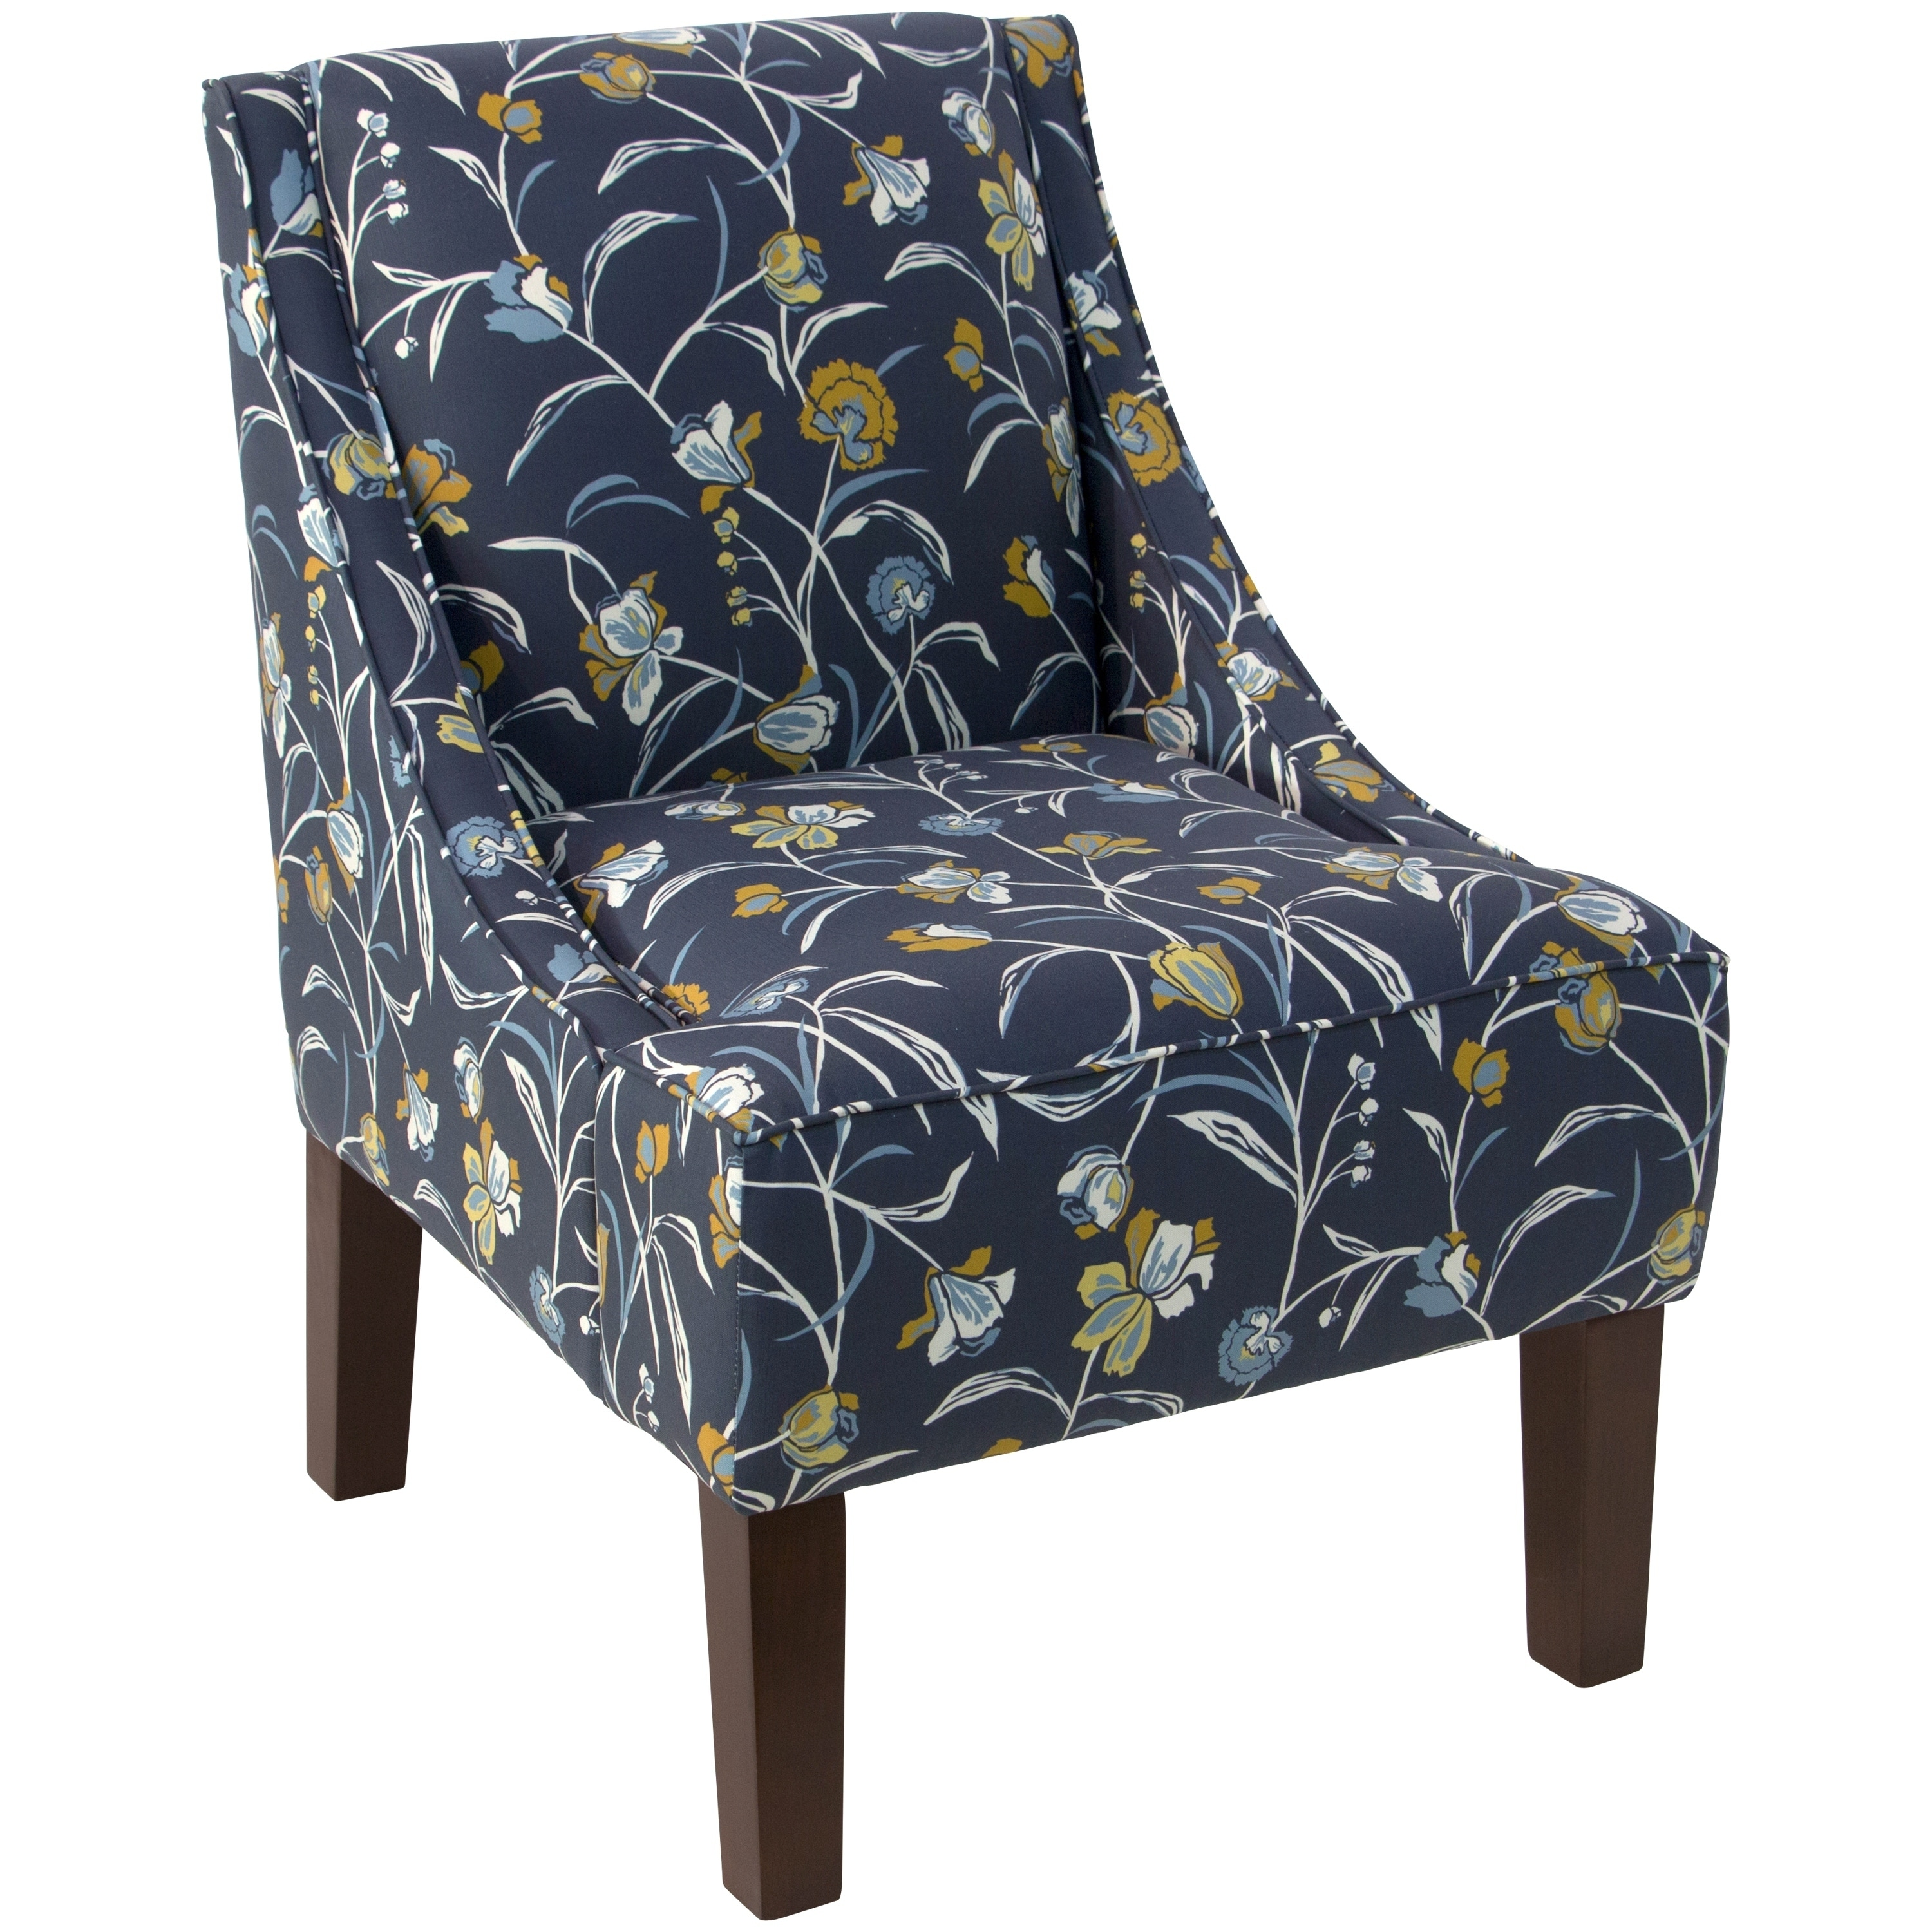 Skyline Furniture Accent Chair In Whisp Fl Navy Ochre Free Shipping Today 18078244